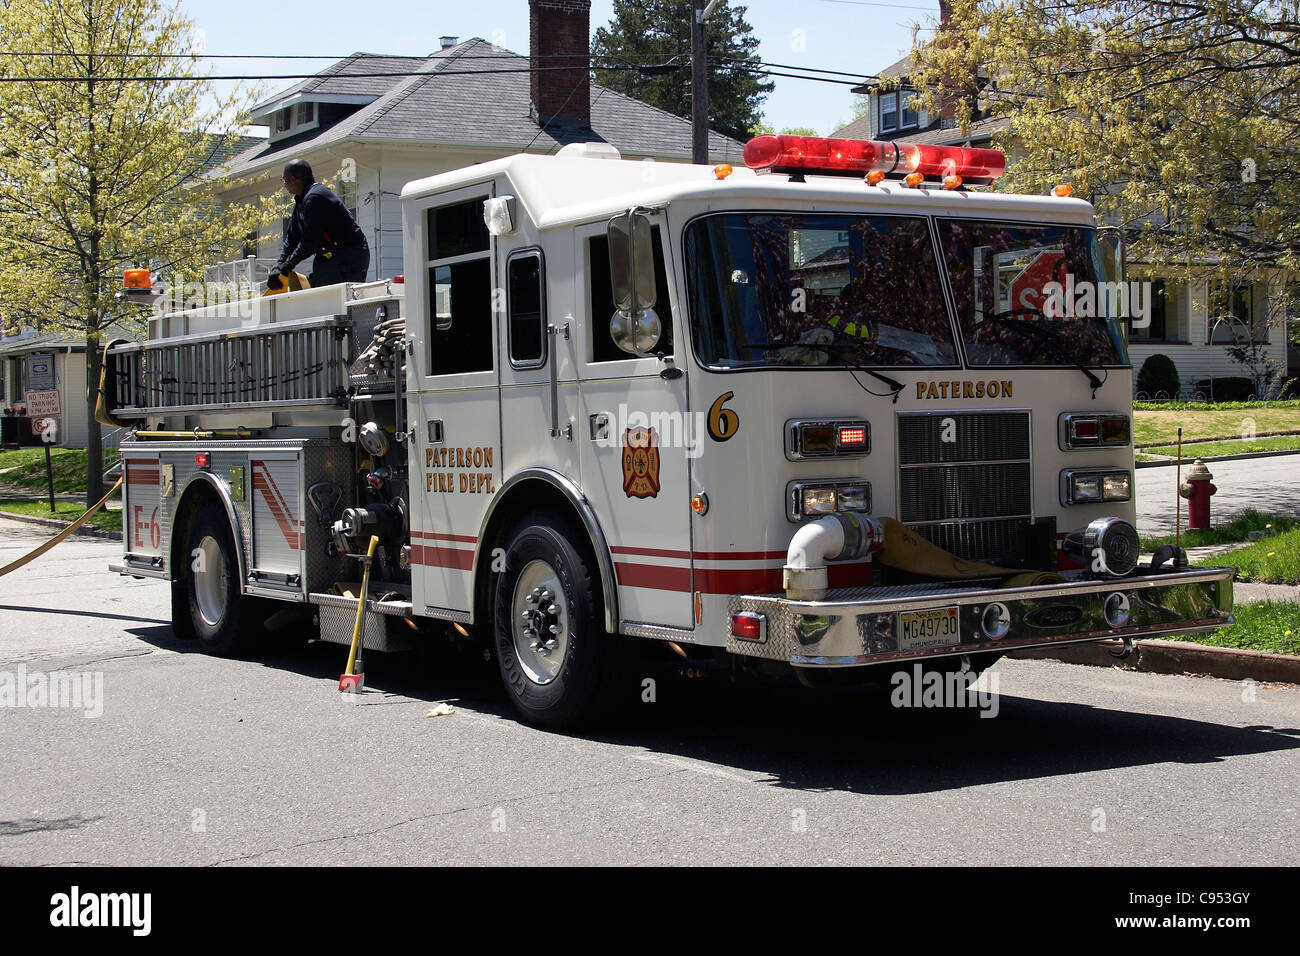 1500 500 Stock Photos Images Alamy Diagram Of Pierce Fire Engine Spartan Truck Paterson 6 Image